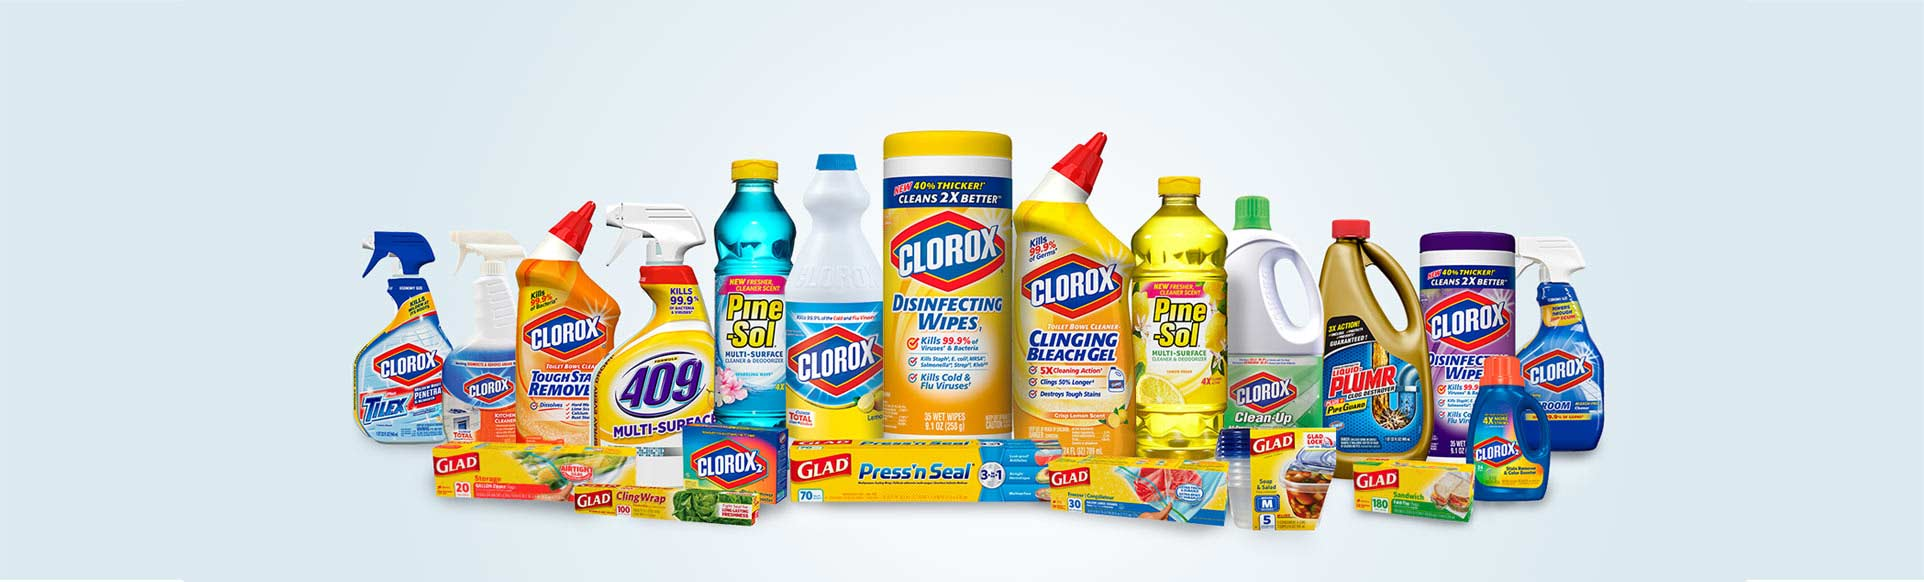 About Clorox